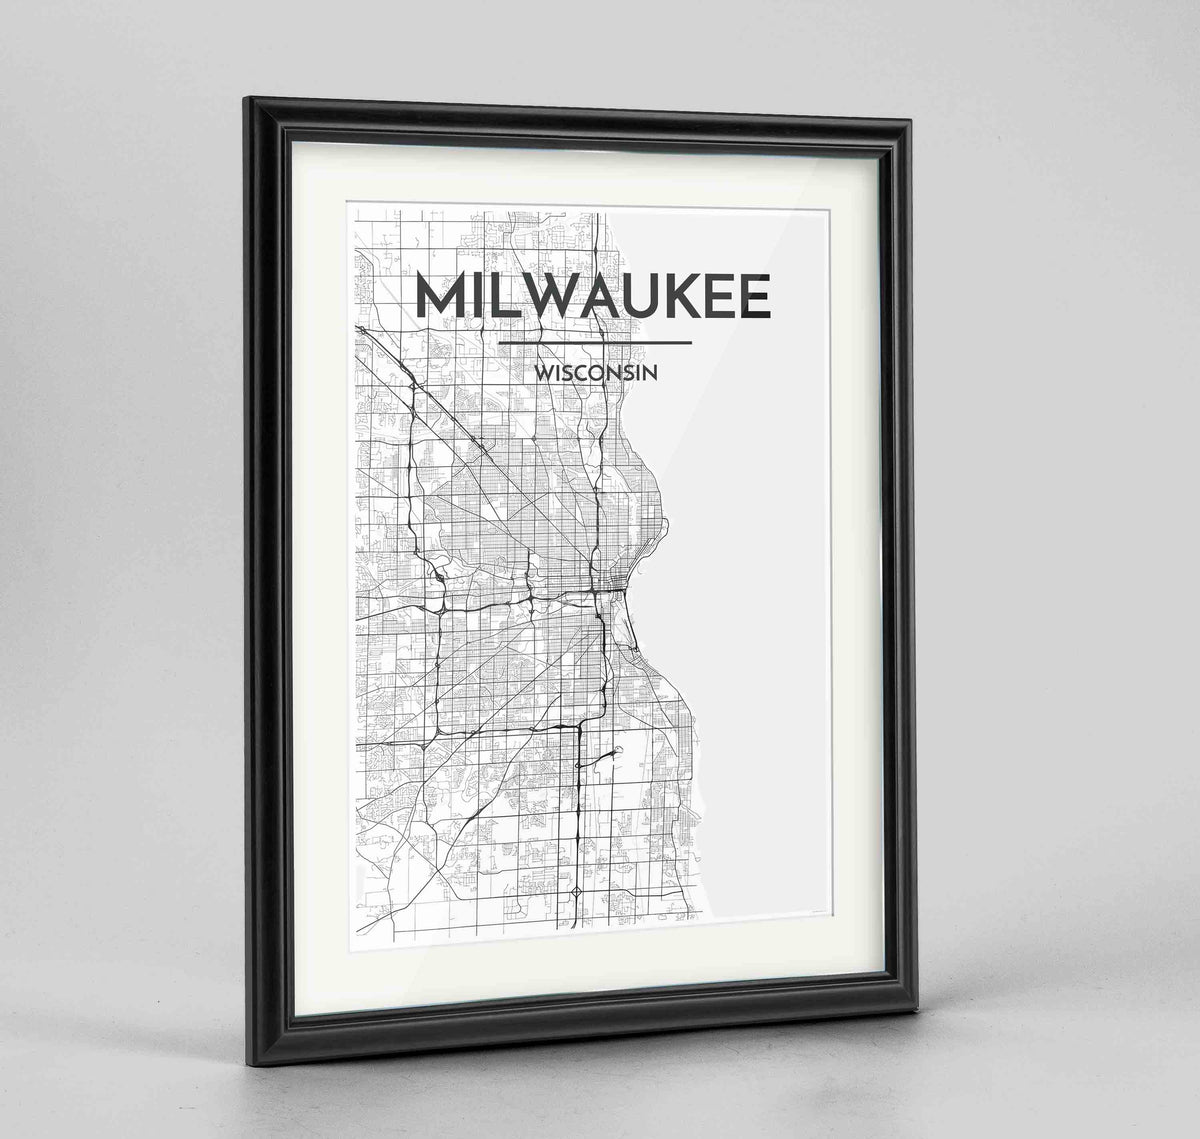 "Framed Milwaukee City Map 24x36"" Traditional Black frame Point Two Design Group"